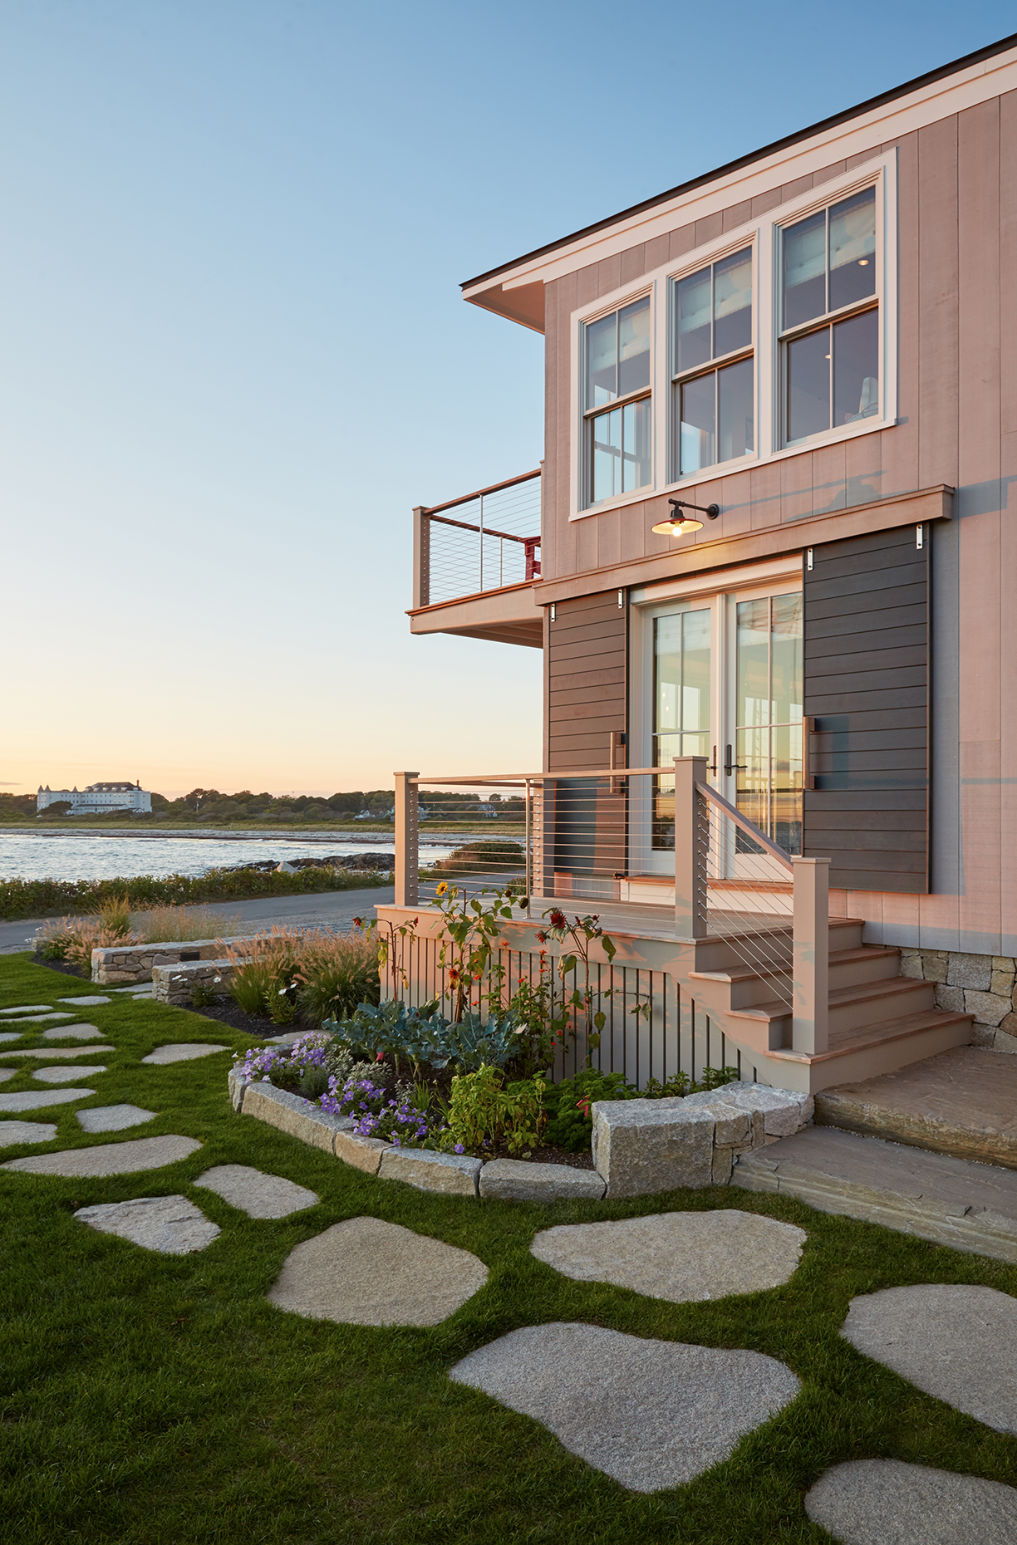 Coastal modern home with curb appeal kellyelko.com #coastal #hometour #housetour #modernhome #curbappeal